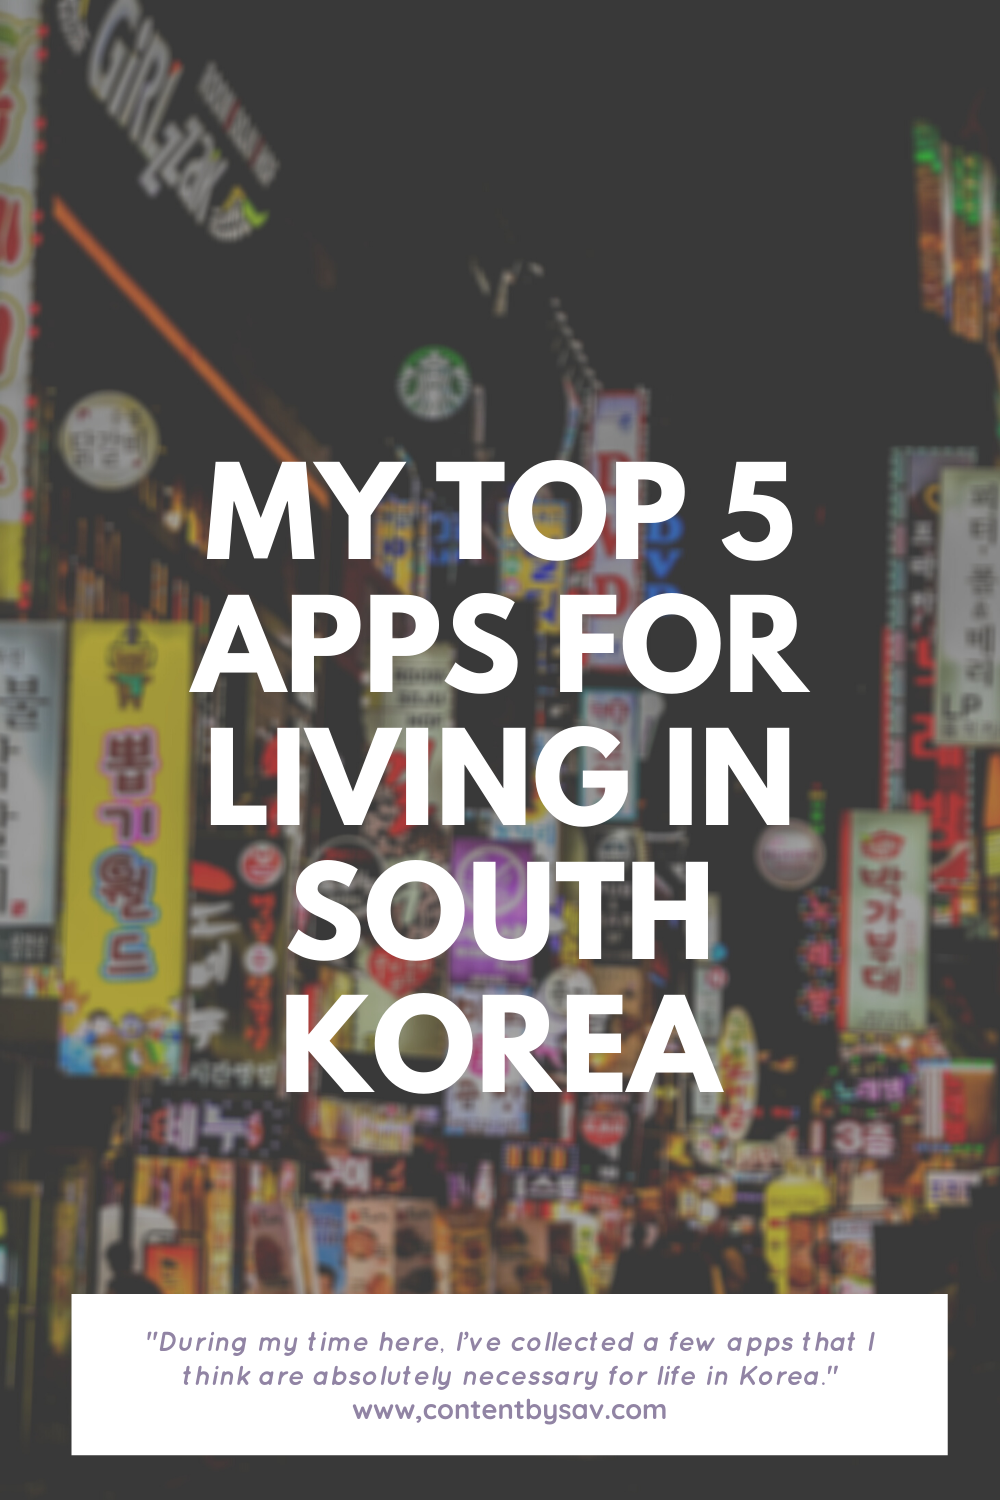 Downtown Seoul at night overlaid by My Top 5 Apps for Living in South Korea